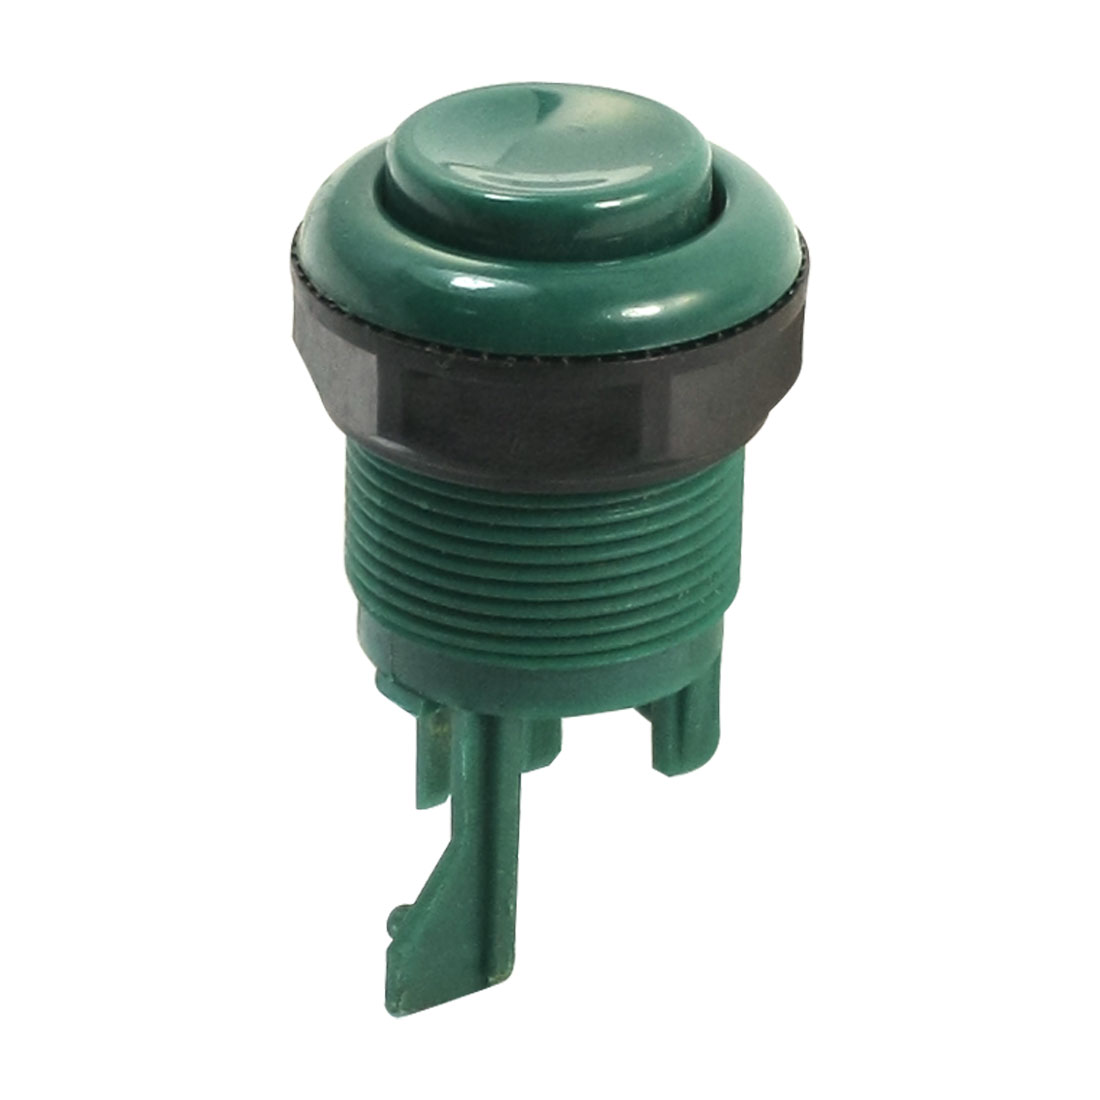 Panel Mounting 28mm Thread Green Black Plastic Round Arcade Game Push Button for Amusement Machine